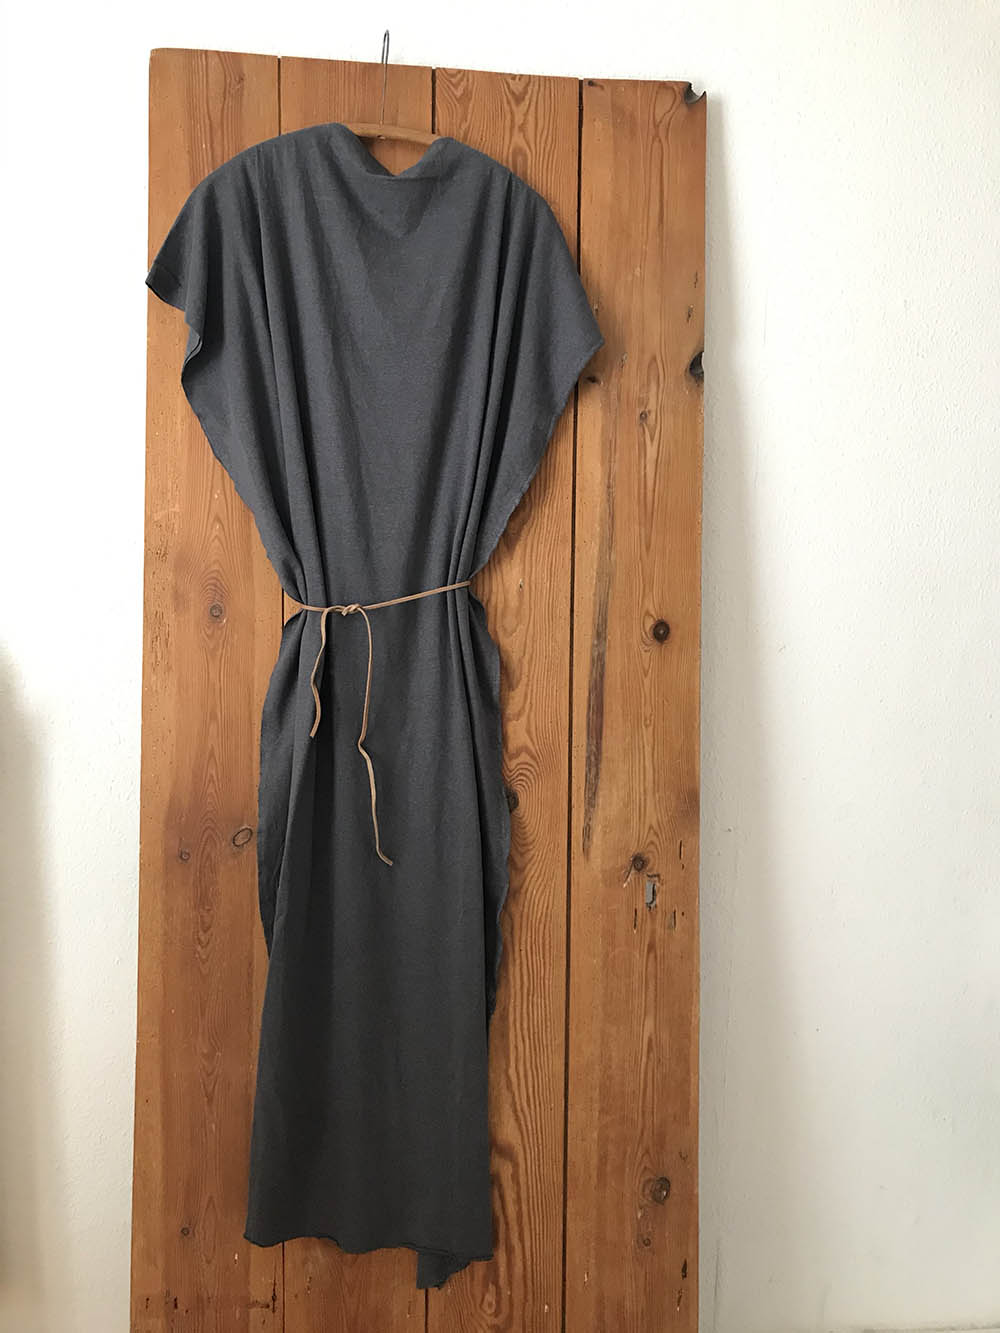 The Dress - dark grey